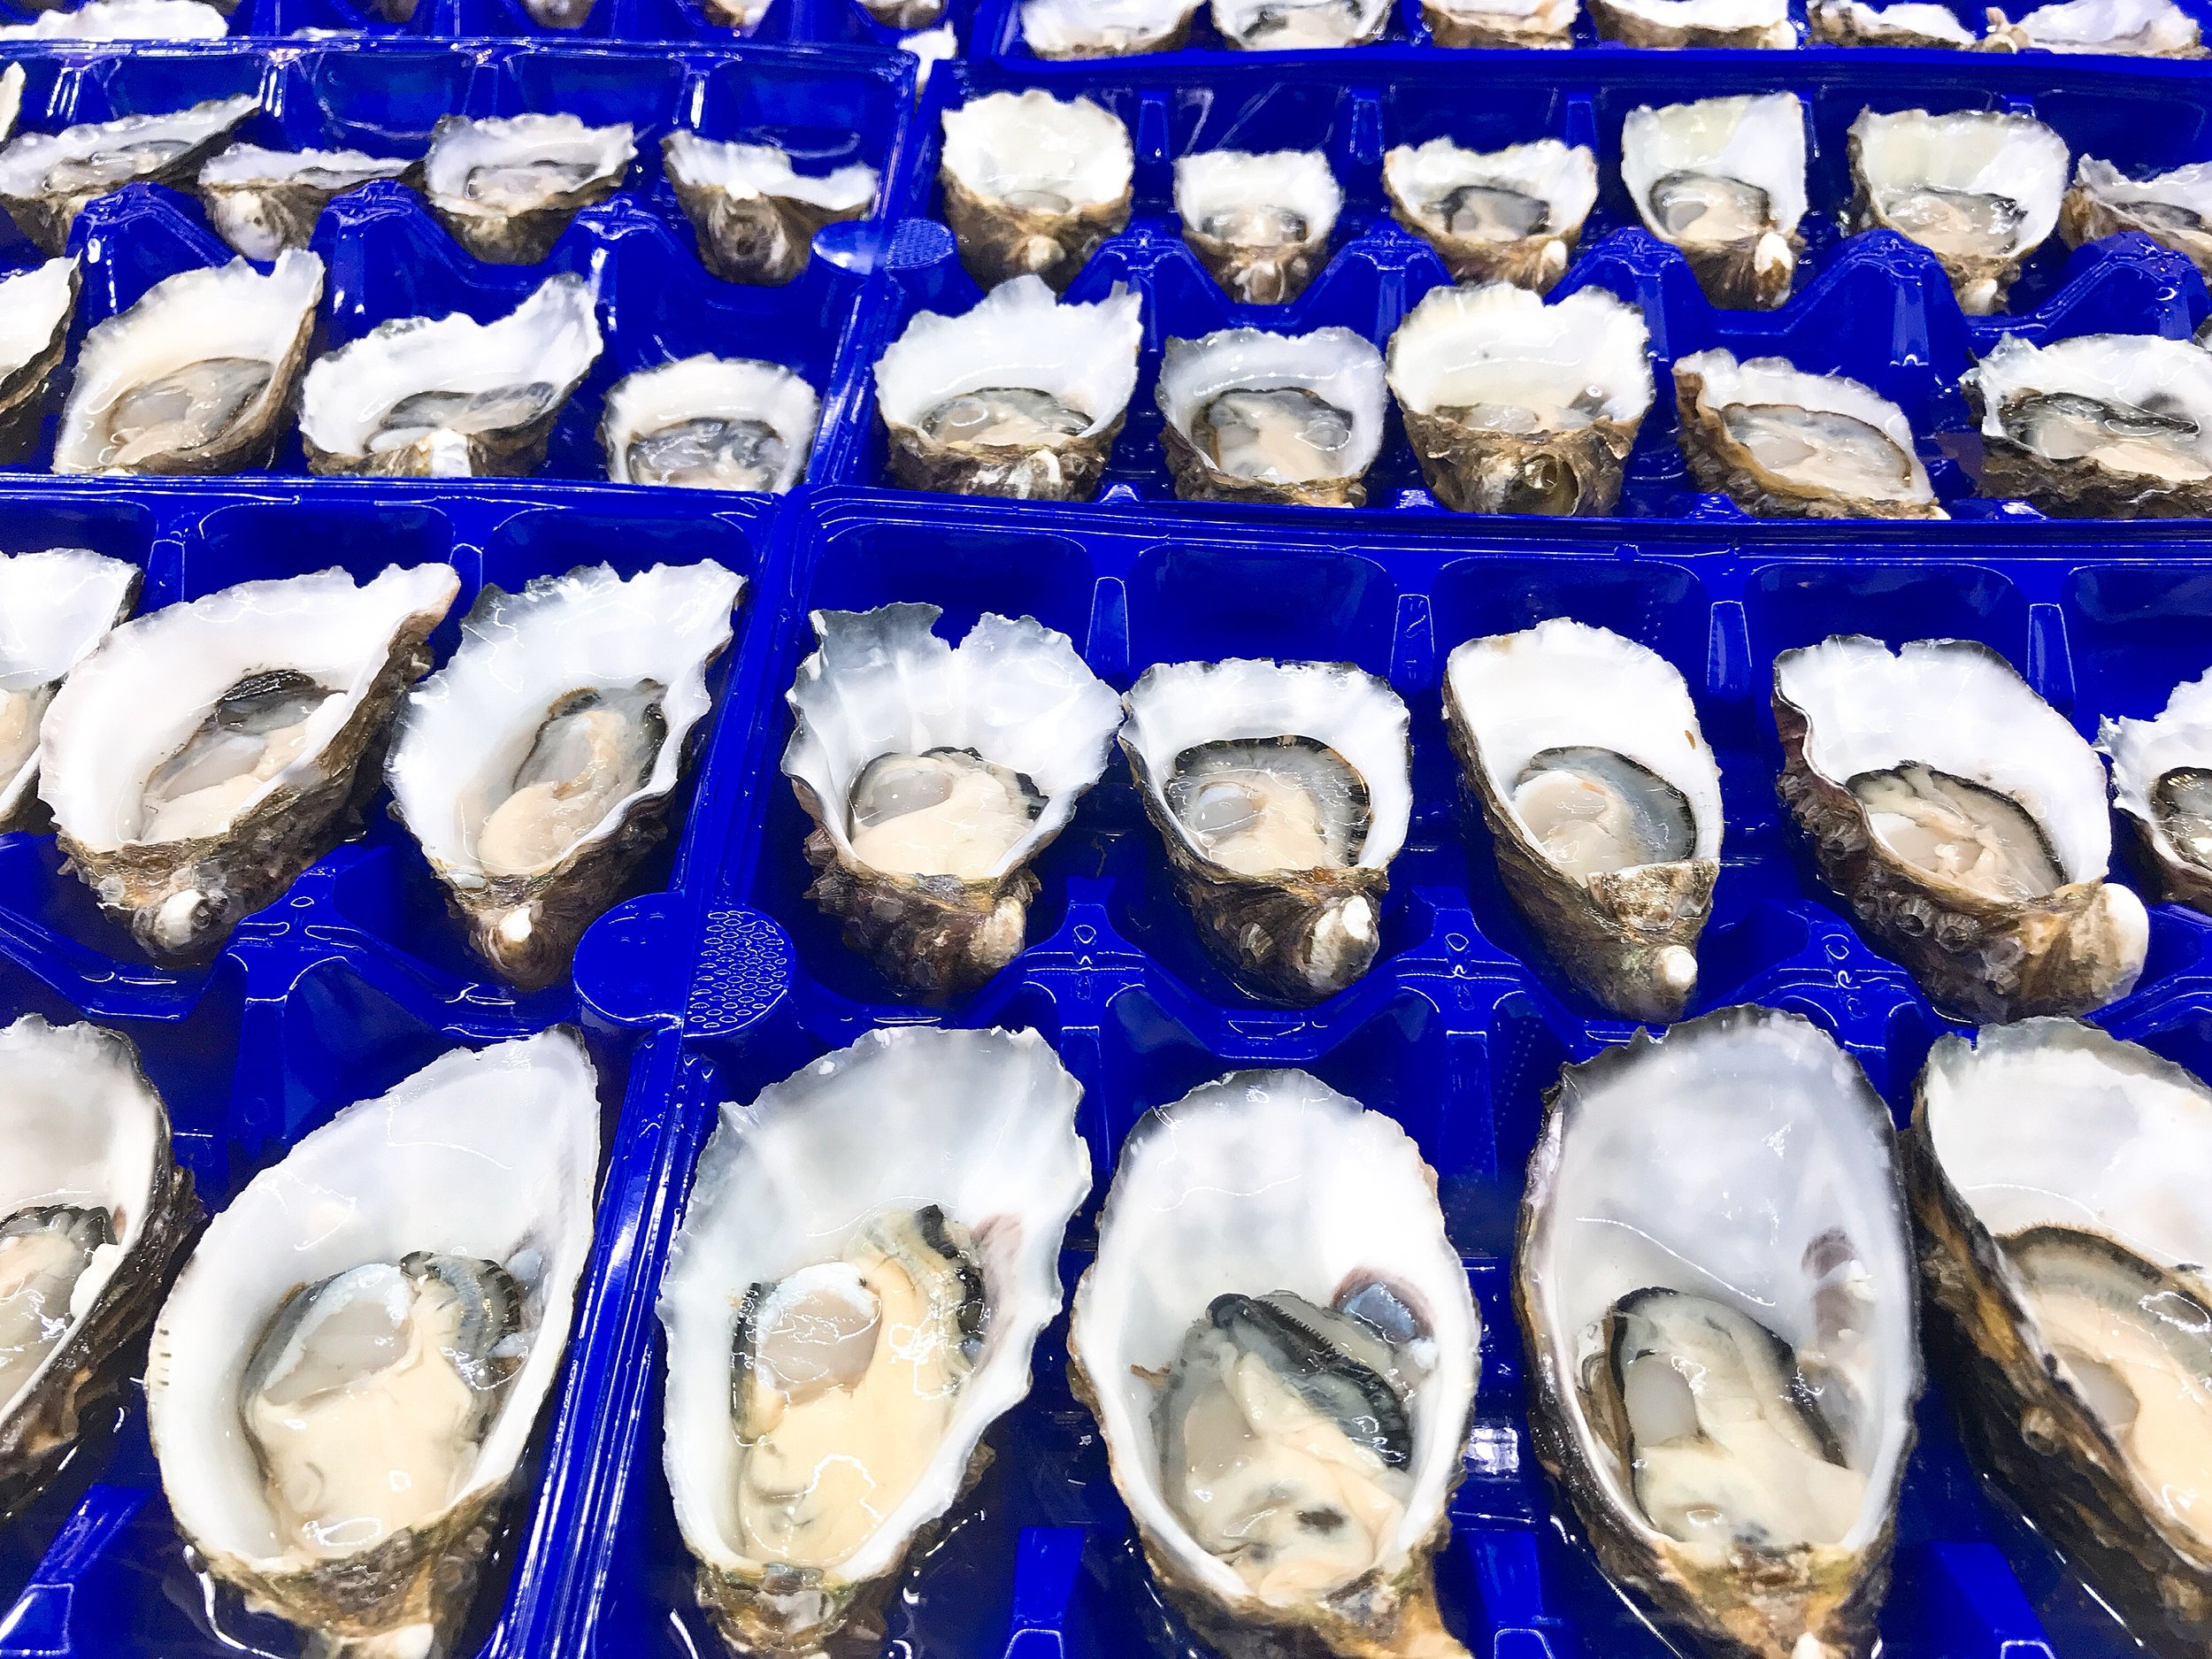 A never ending supply of oysters